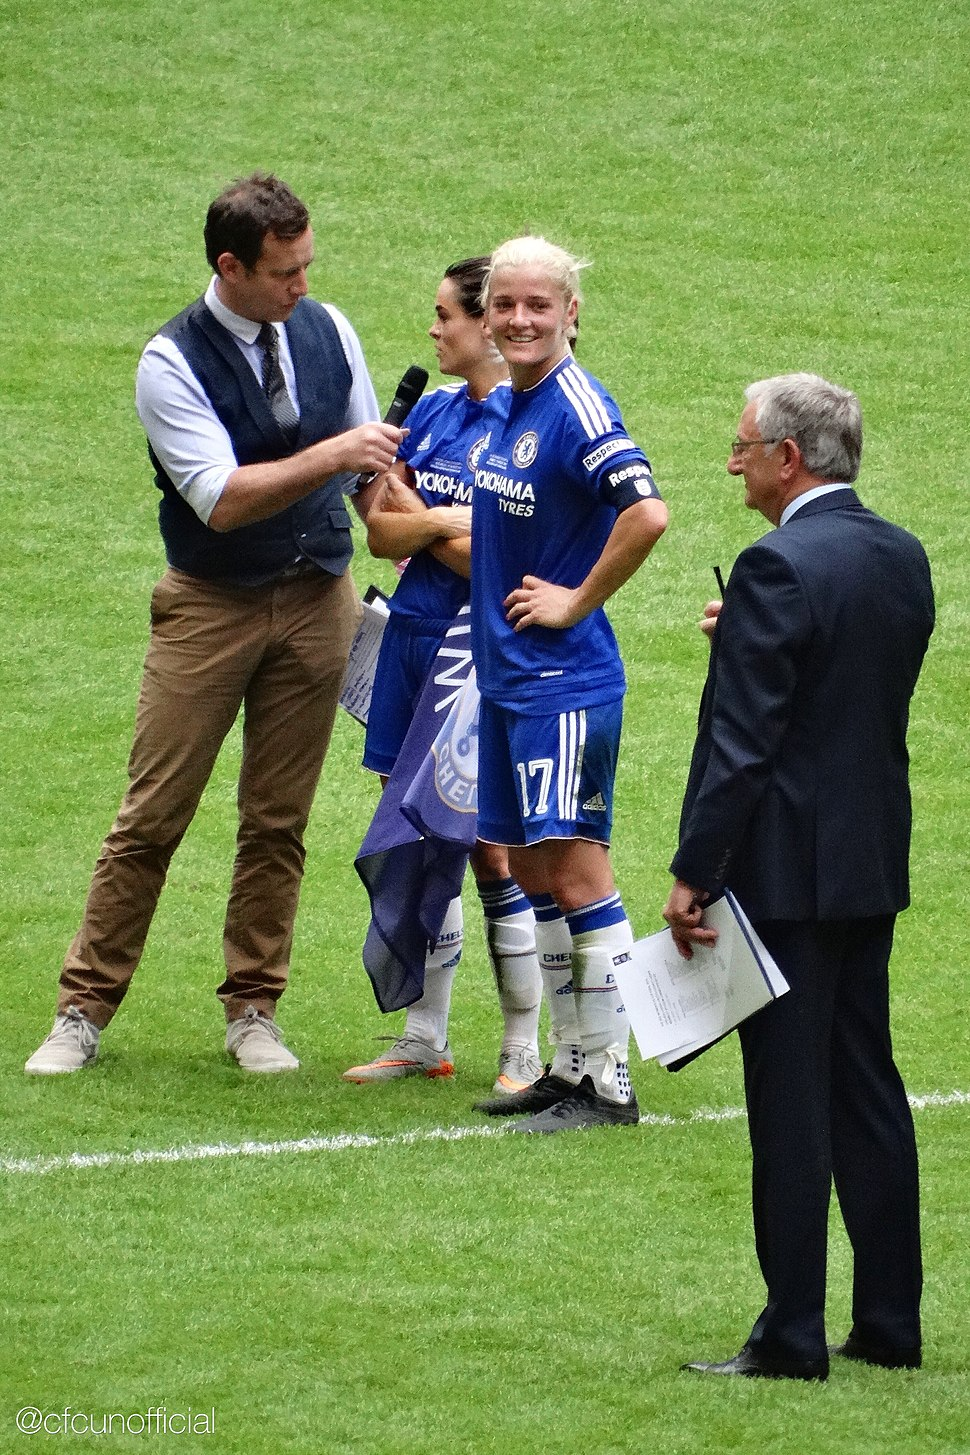 Chelsea Ladies 1 Notts County Ladies 0 (20183103506) (2)